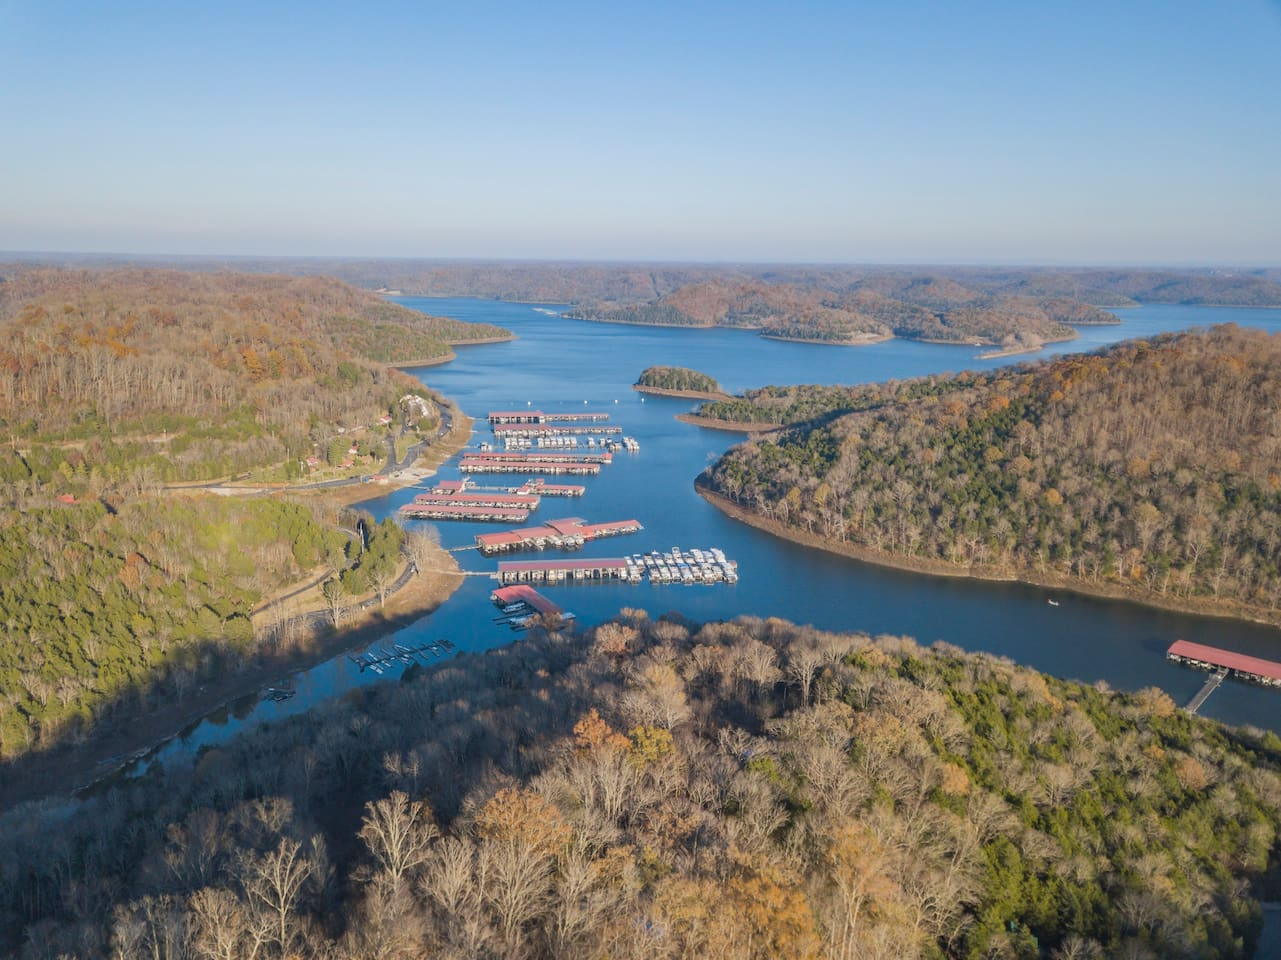 Did someone say Center Hill Lake....CHL? It's a hop from this place...Center Hill Marina AKA Cove Hollow Marina is 5 minutes from our door!